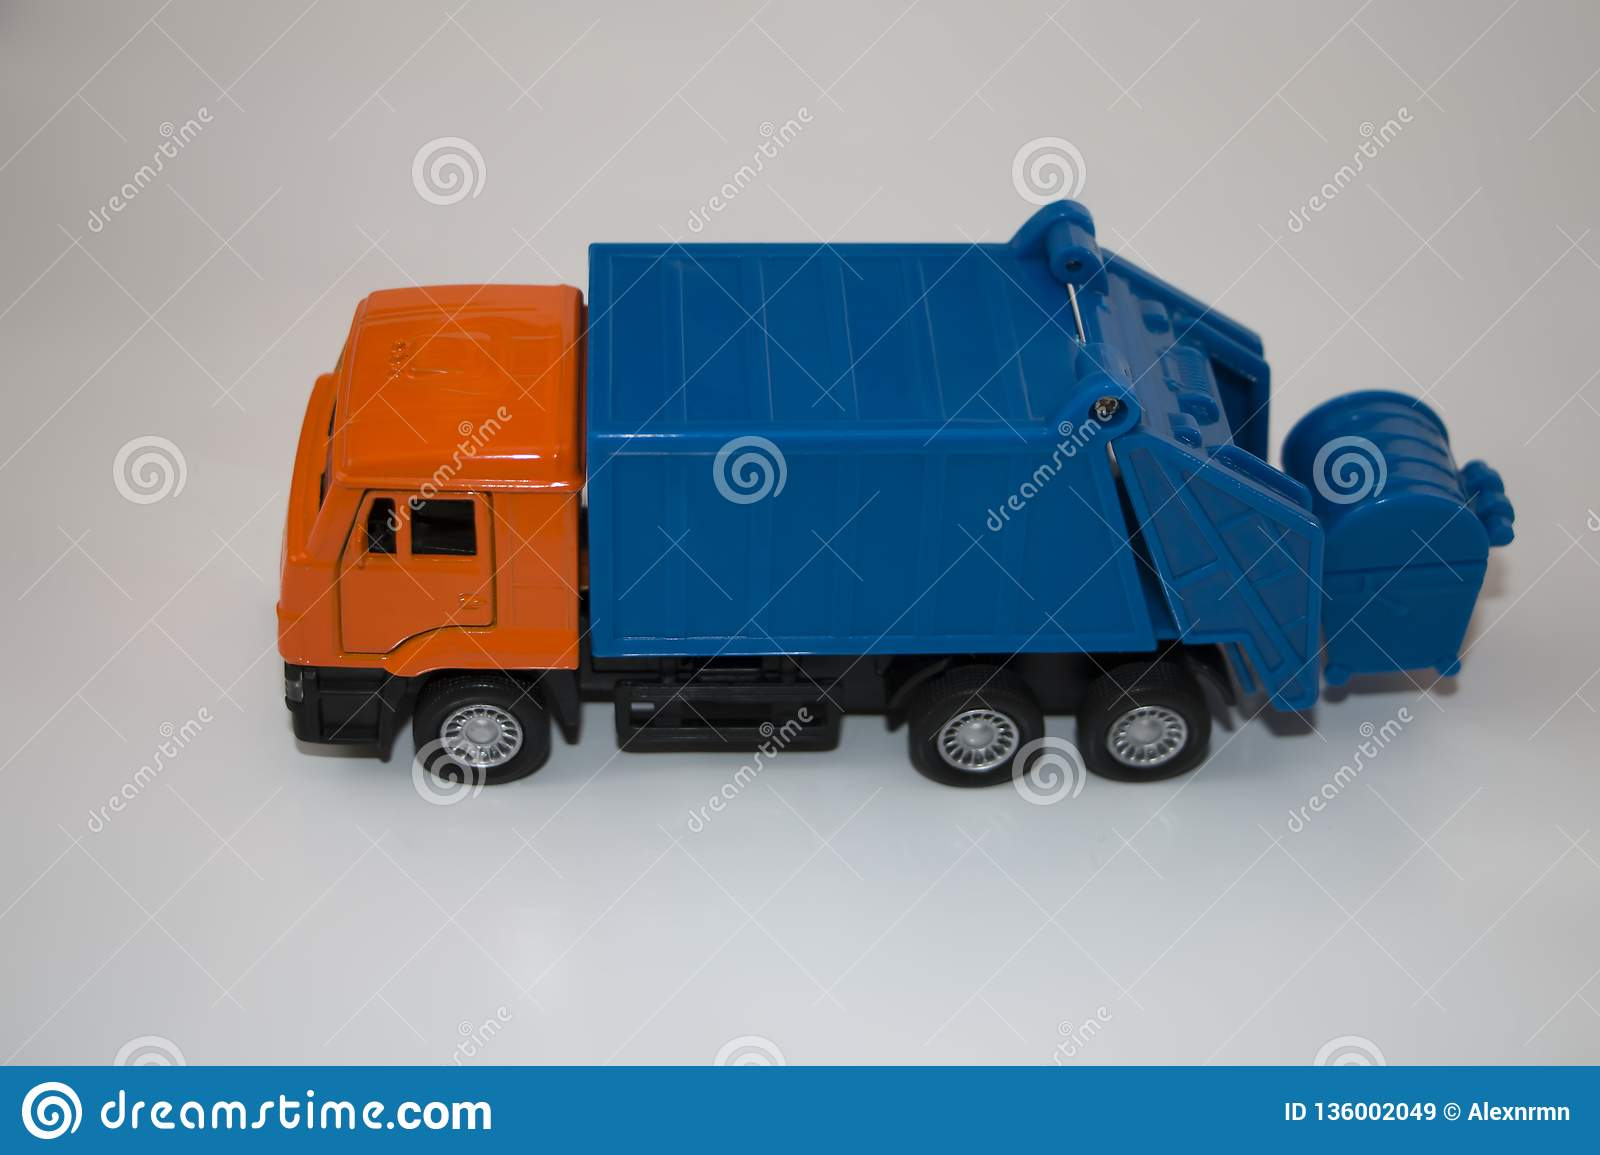 Toy garbage truck on a white background